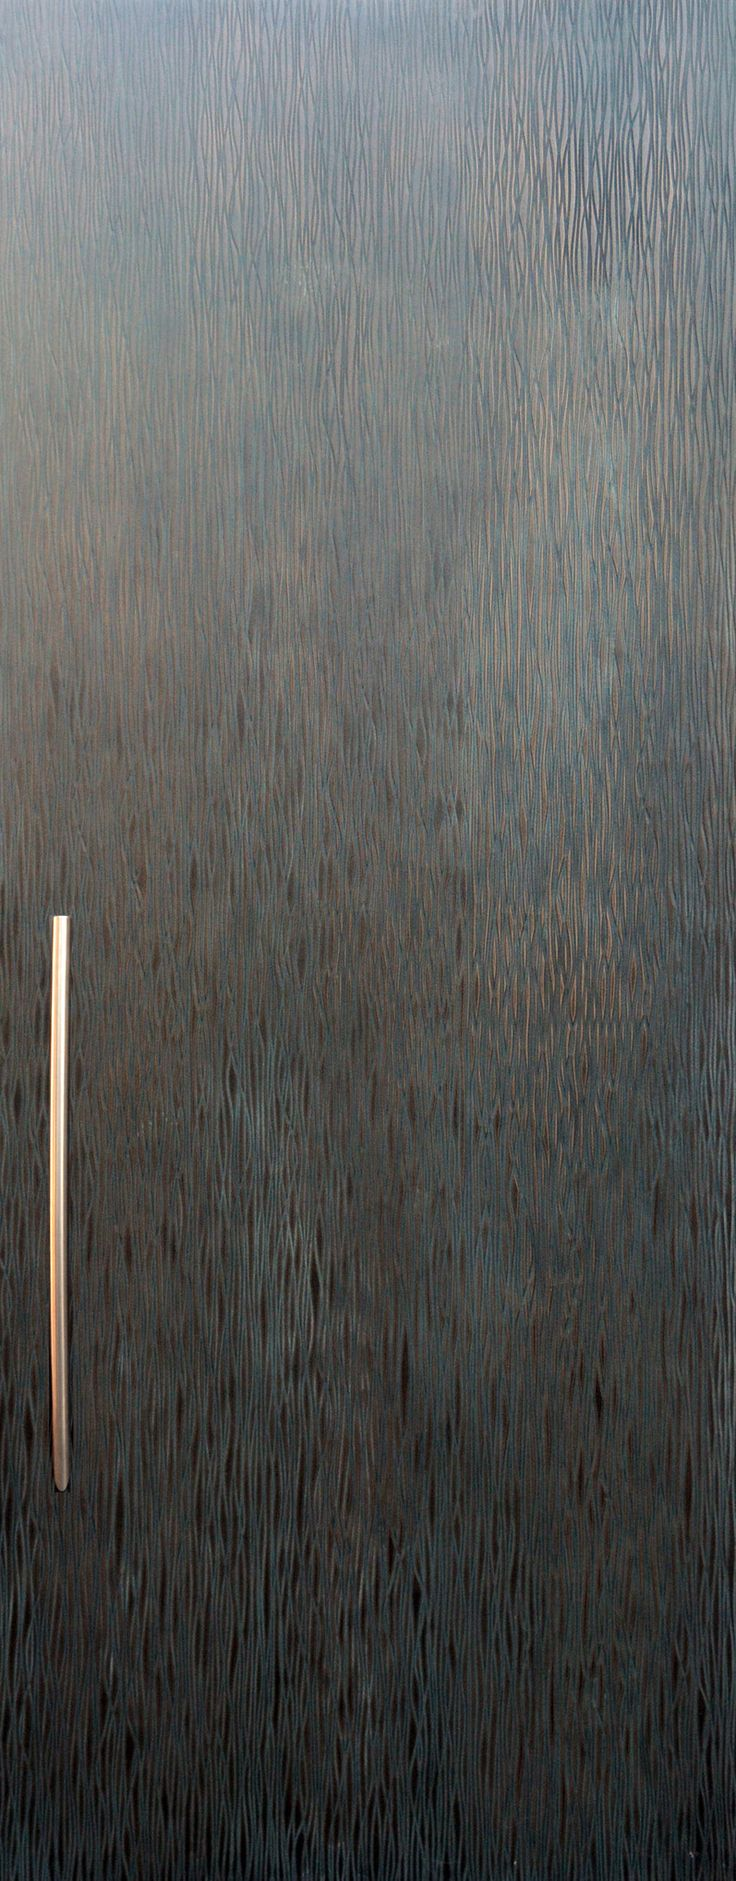 Close-up of distressed bronze door made by Axolotl. We love the texture and rawness of this material treatment.